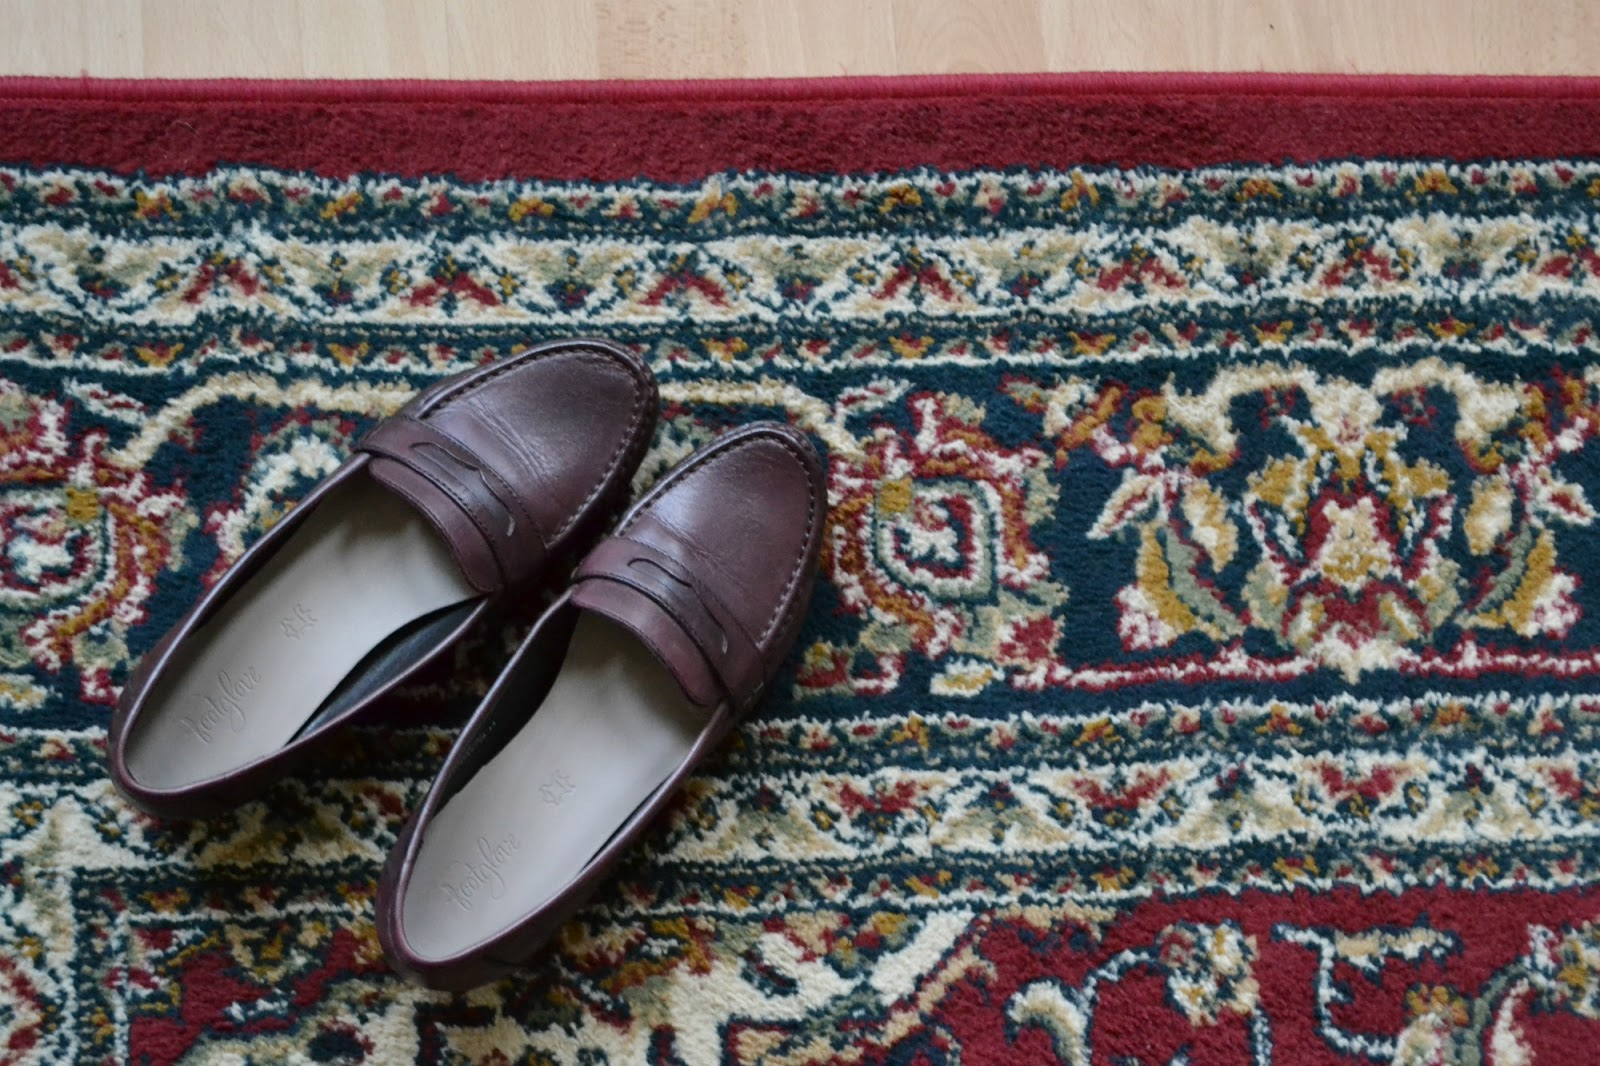 loafers shoes M&S vintage carpet rug